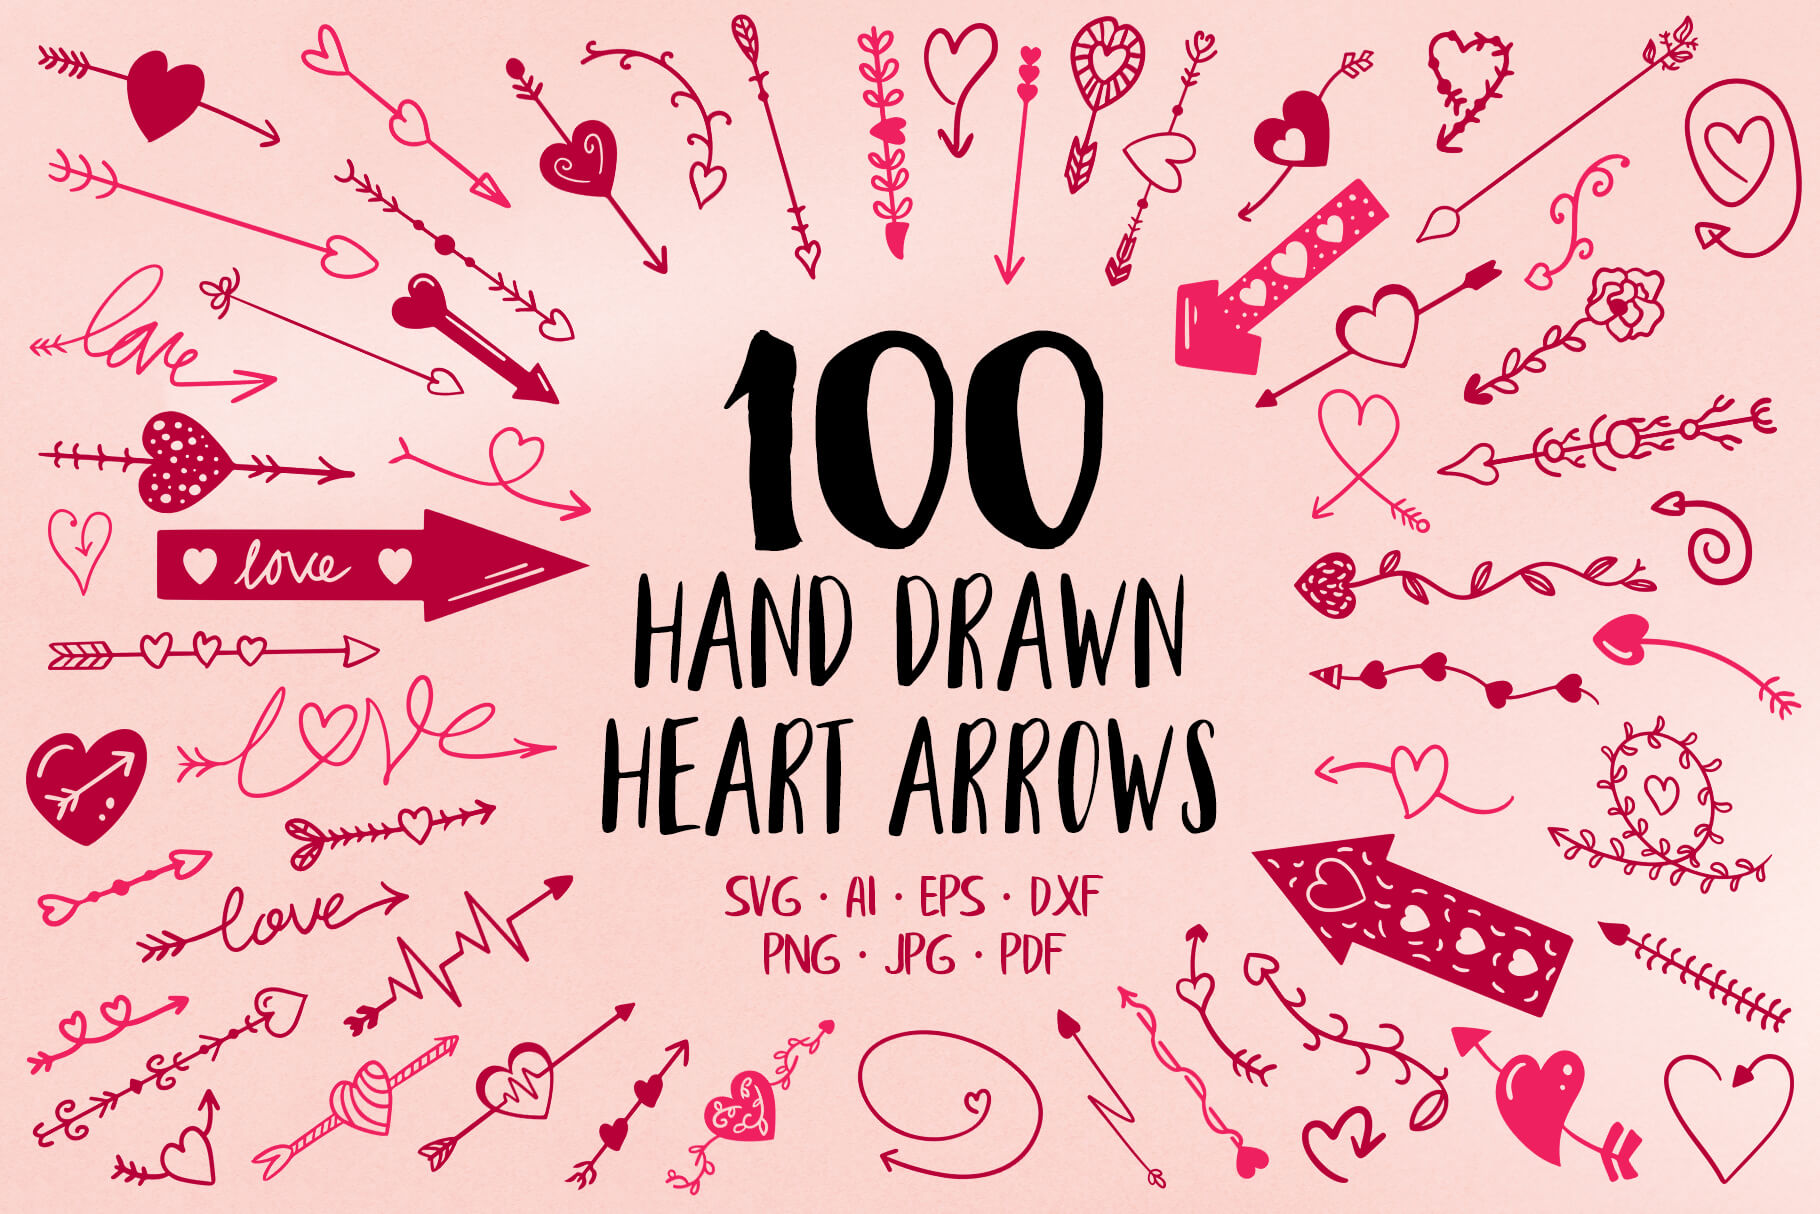 Download Free 100 Hand Drawn Heart Arrow Svg Files Graphic By Jonas Stensgaard for Cricut Explore, Silhouette and other cutting machines.